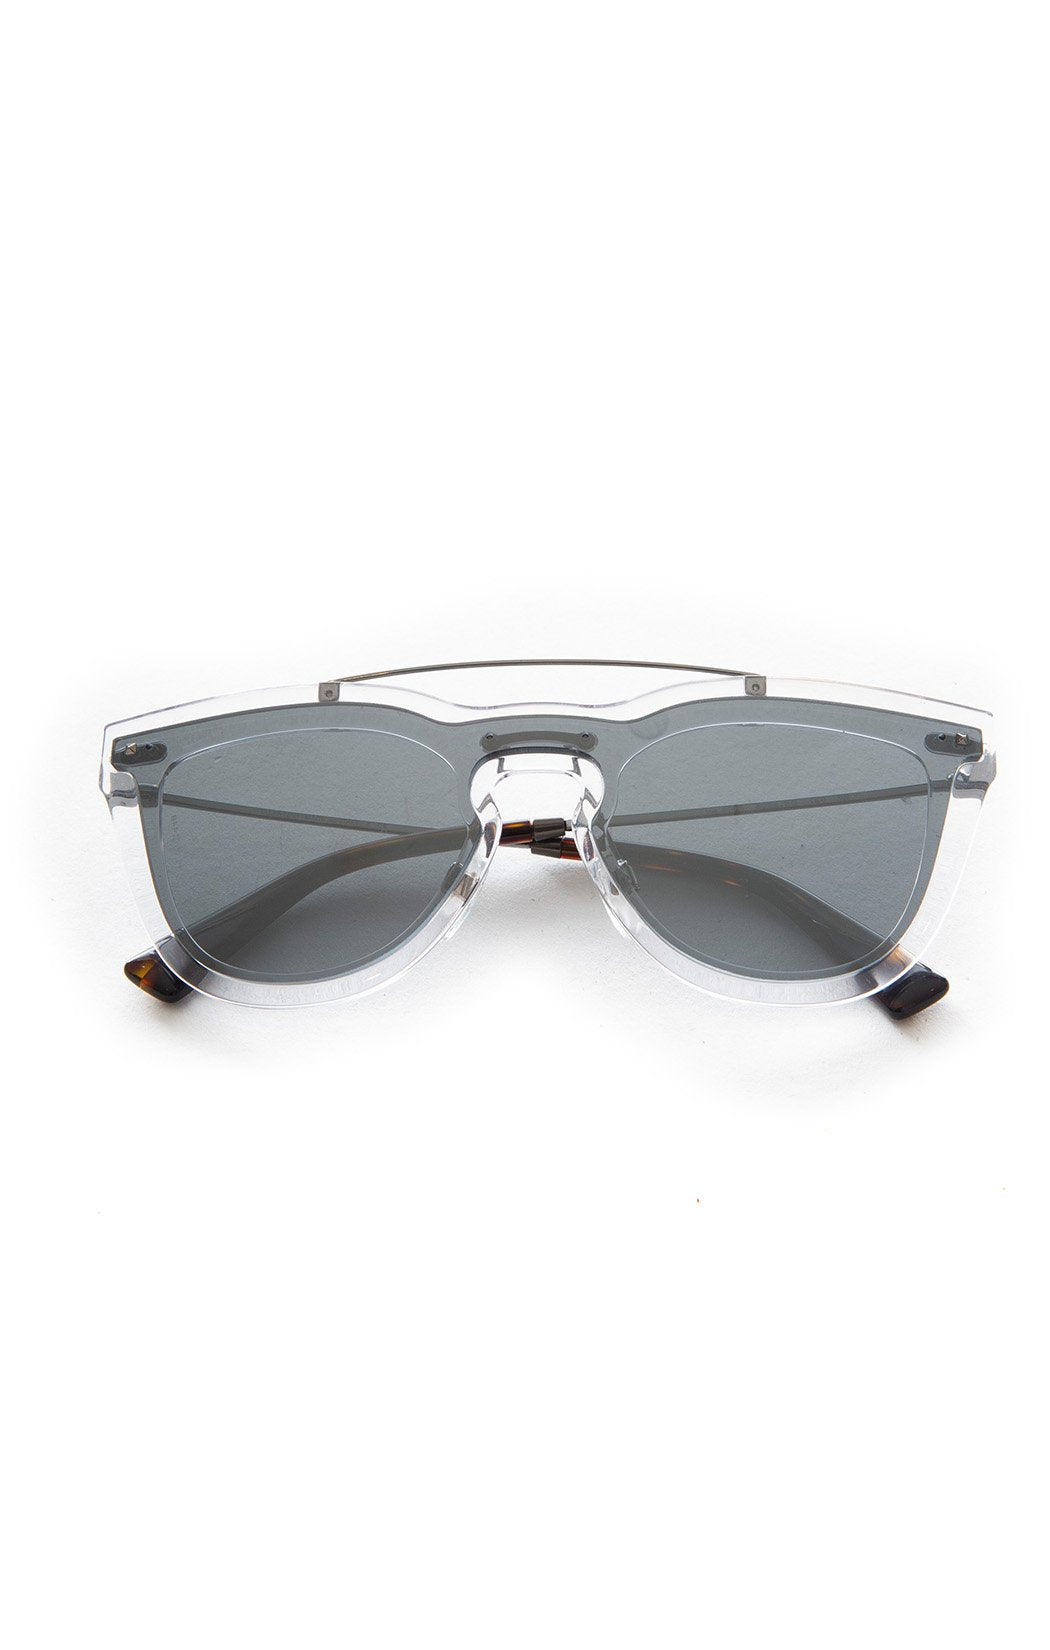 "Front view of VALENTINO Sunglasses Size: 2.25"" H x 5.5"" W"